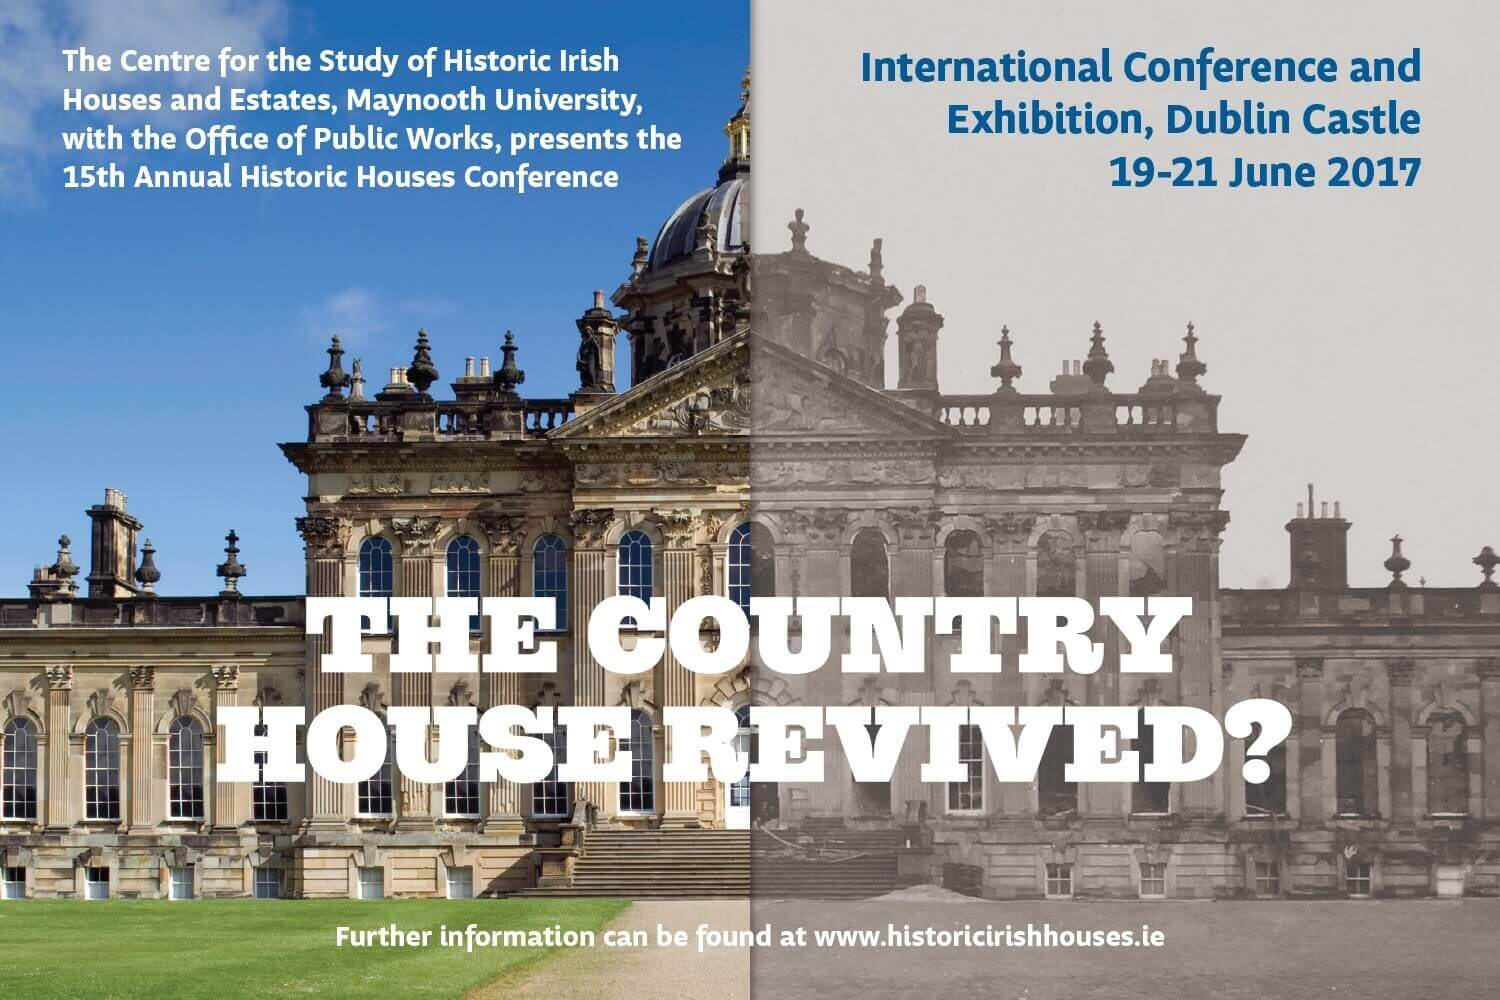 The Country House Revived?